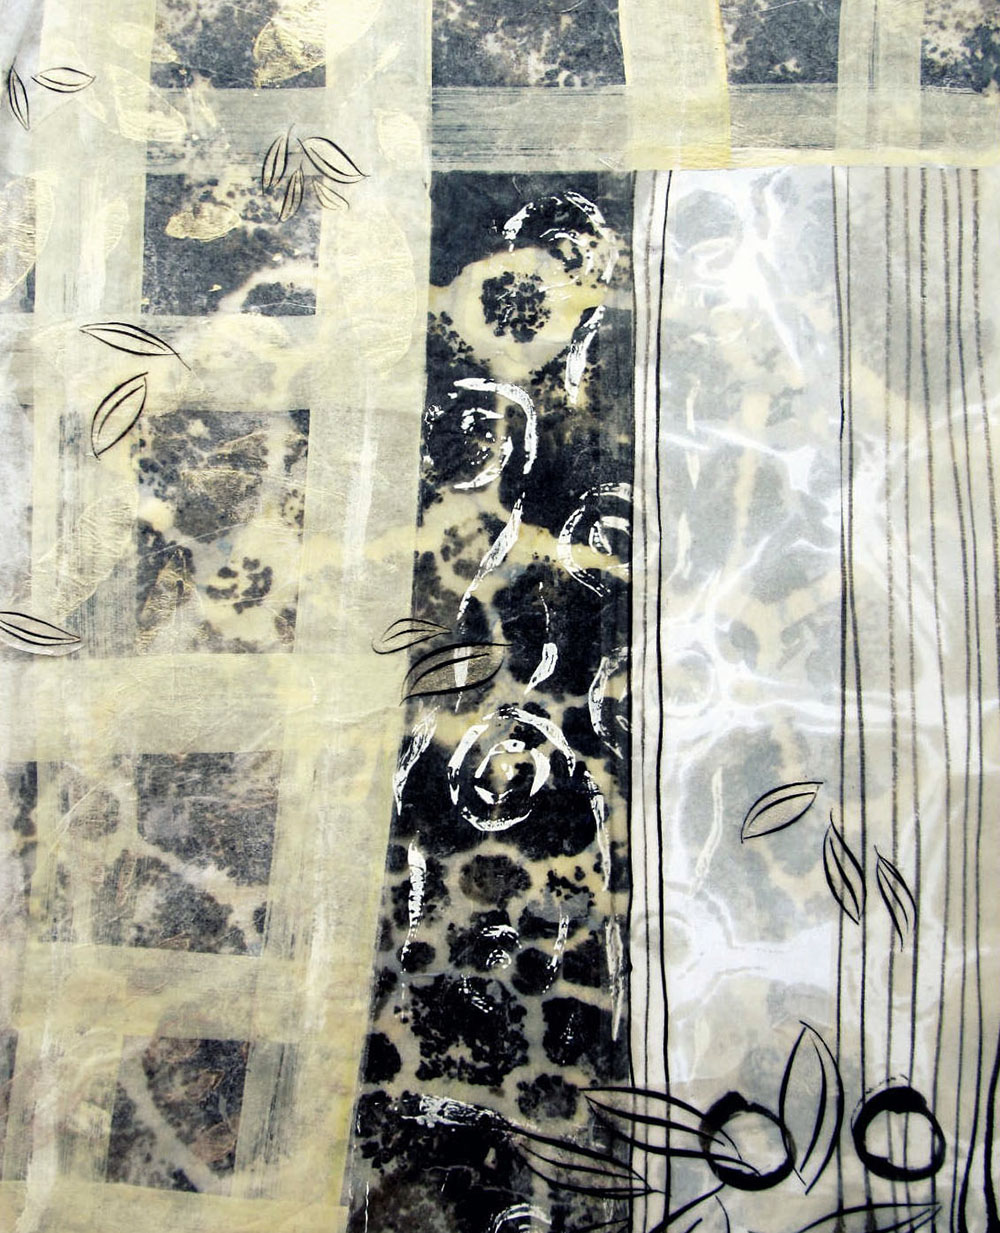 encaustic monotype collage